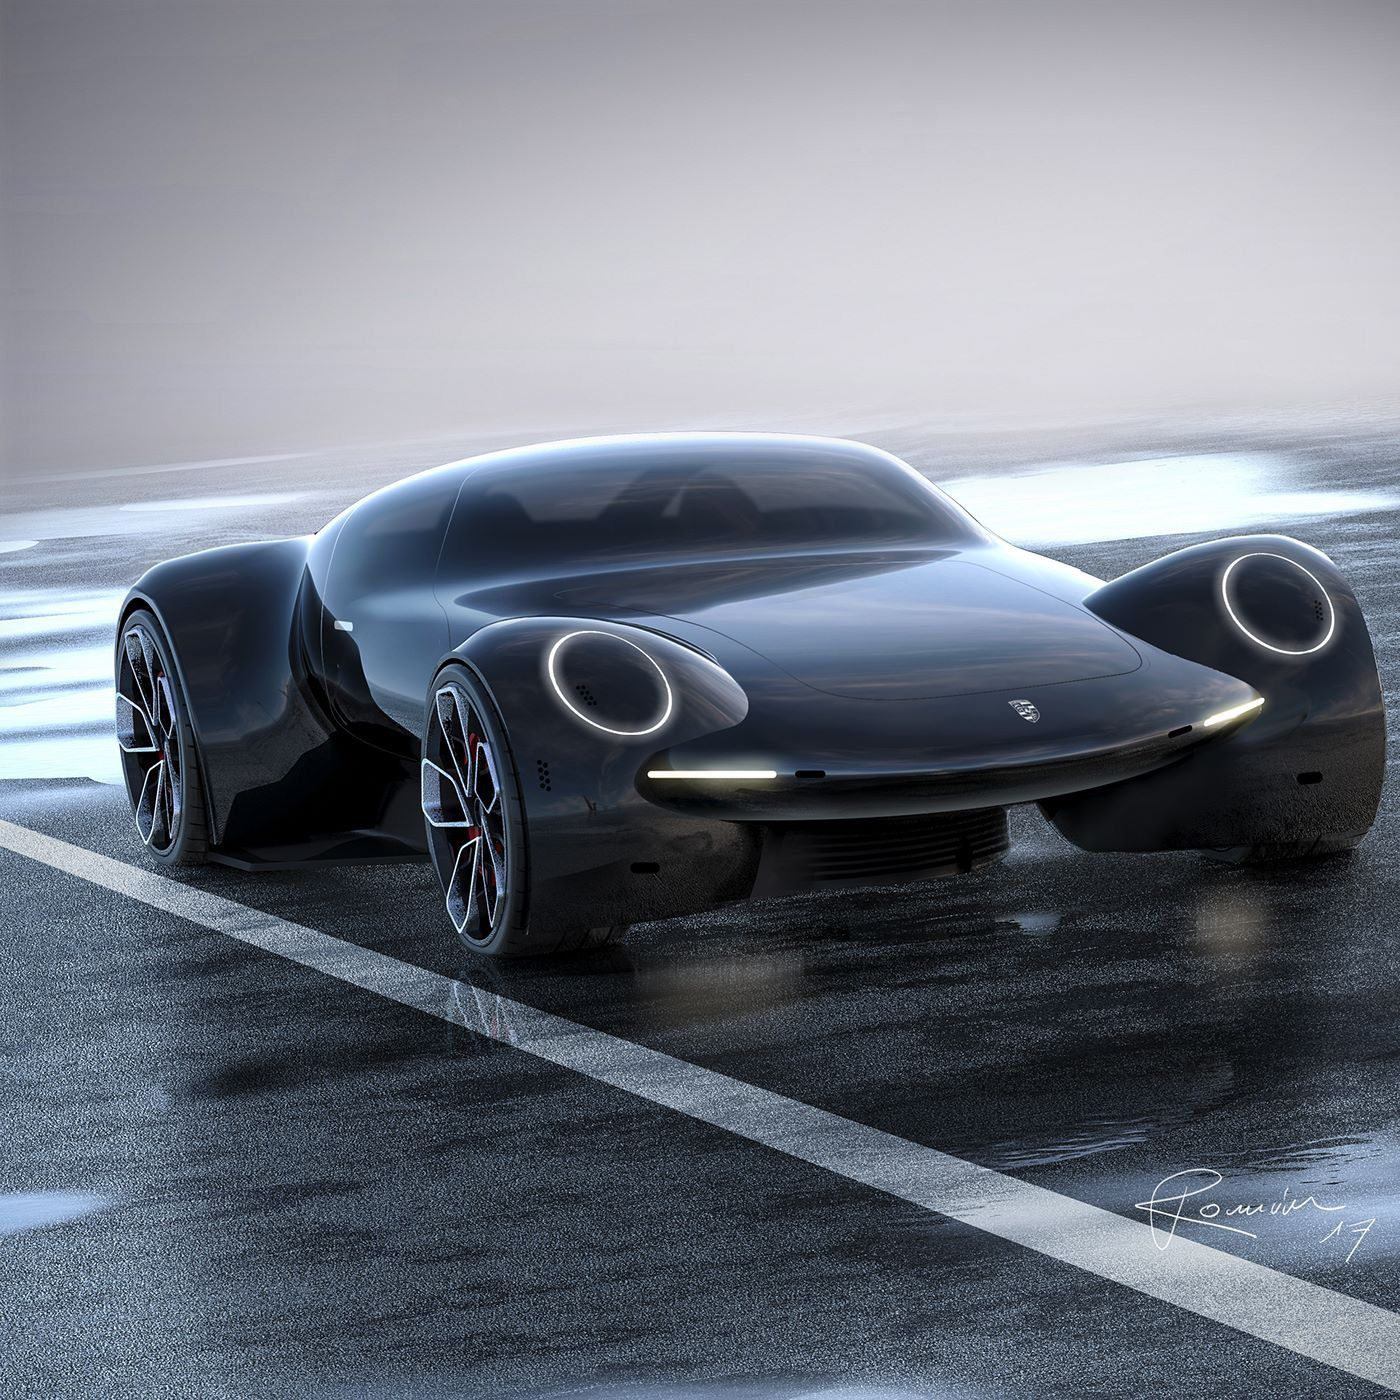 Pin by Anna Horst on Nicky | Concept Cars, Porsche, Super cars